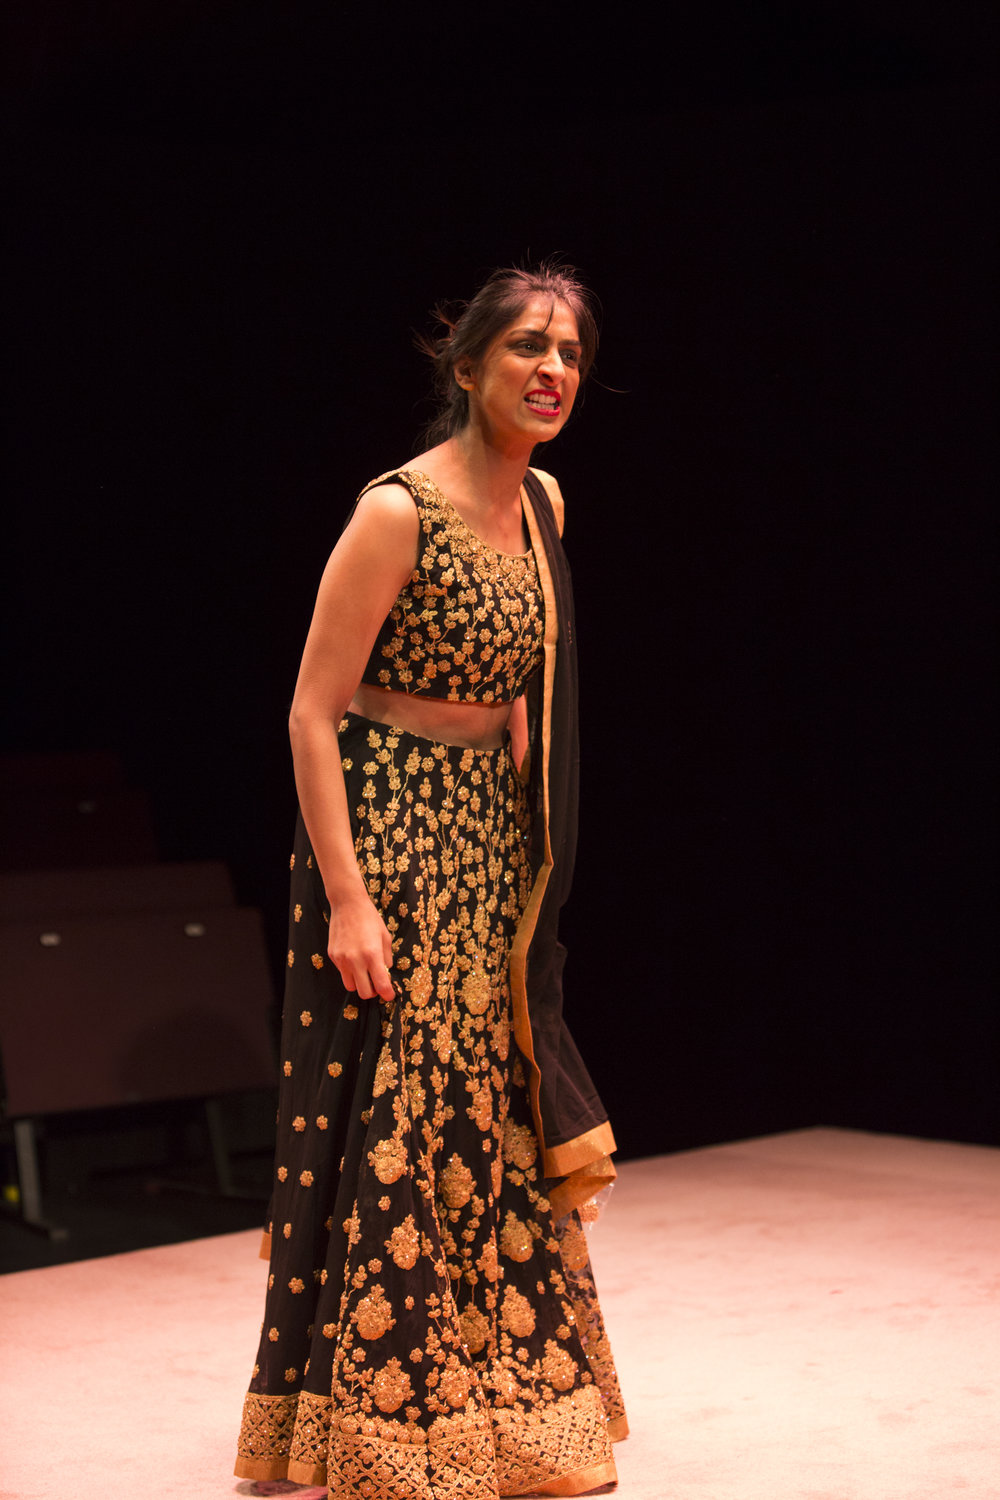 Raagni Sharma as Amy_credit Ellie Kurttz.JPG